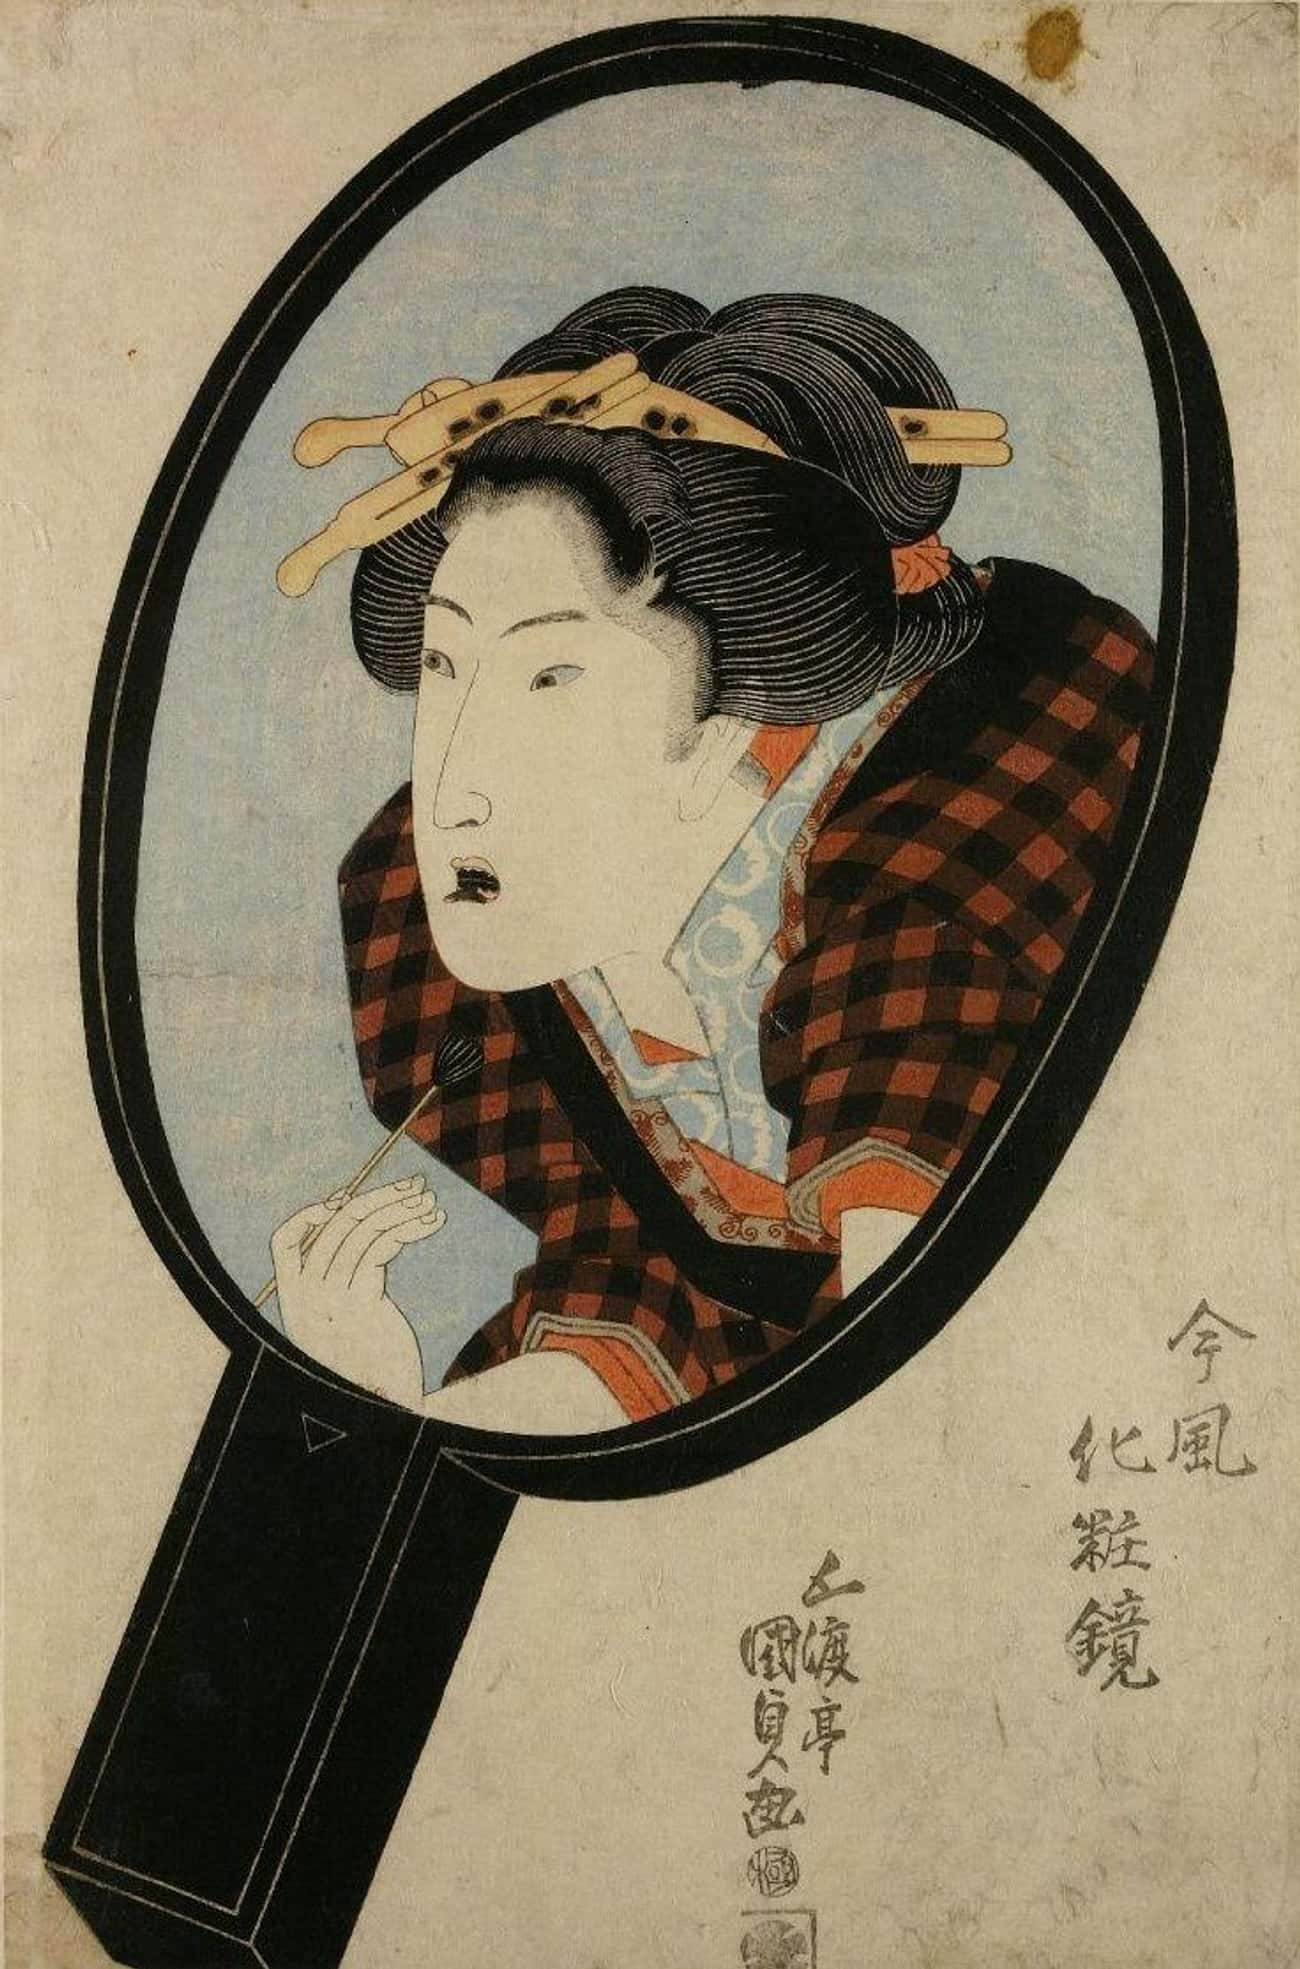 Japanese Women Actually Wanted is listed (or ranked) 4 on the list 18 Of The Strangest, Most Dated Beauty Trends From History